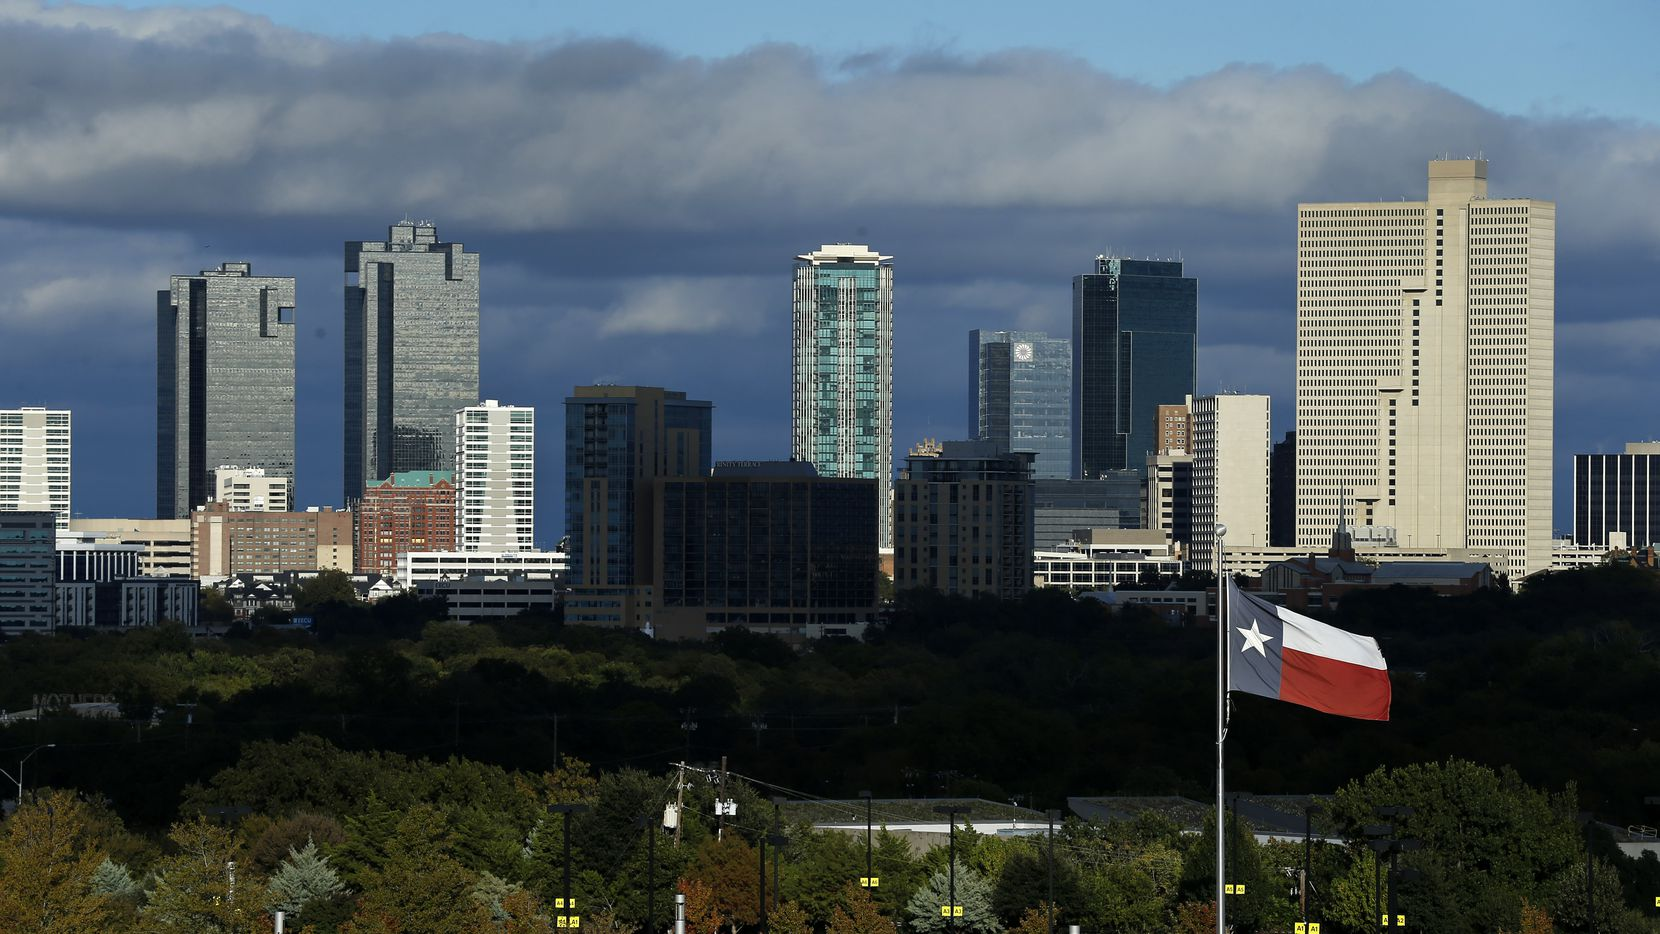 After several days of mist and rain, clouds began to dissipate over the Fort Worth skyline, Wednesday afternoon, October 28, 2020. Temperatures should begin rising going into the weekend after lows in the 30's. (Tom Fox/The Dallas Morning News)